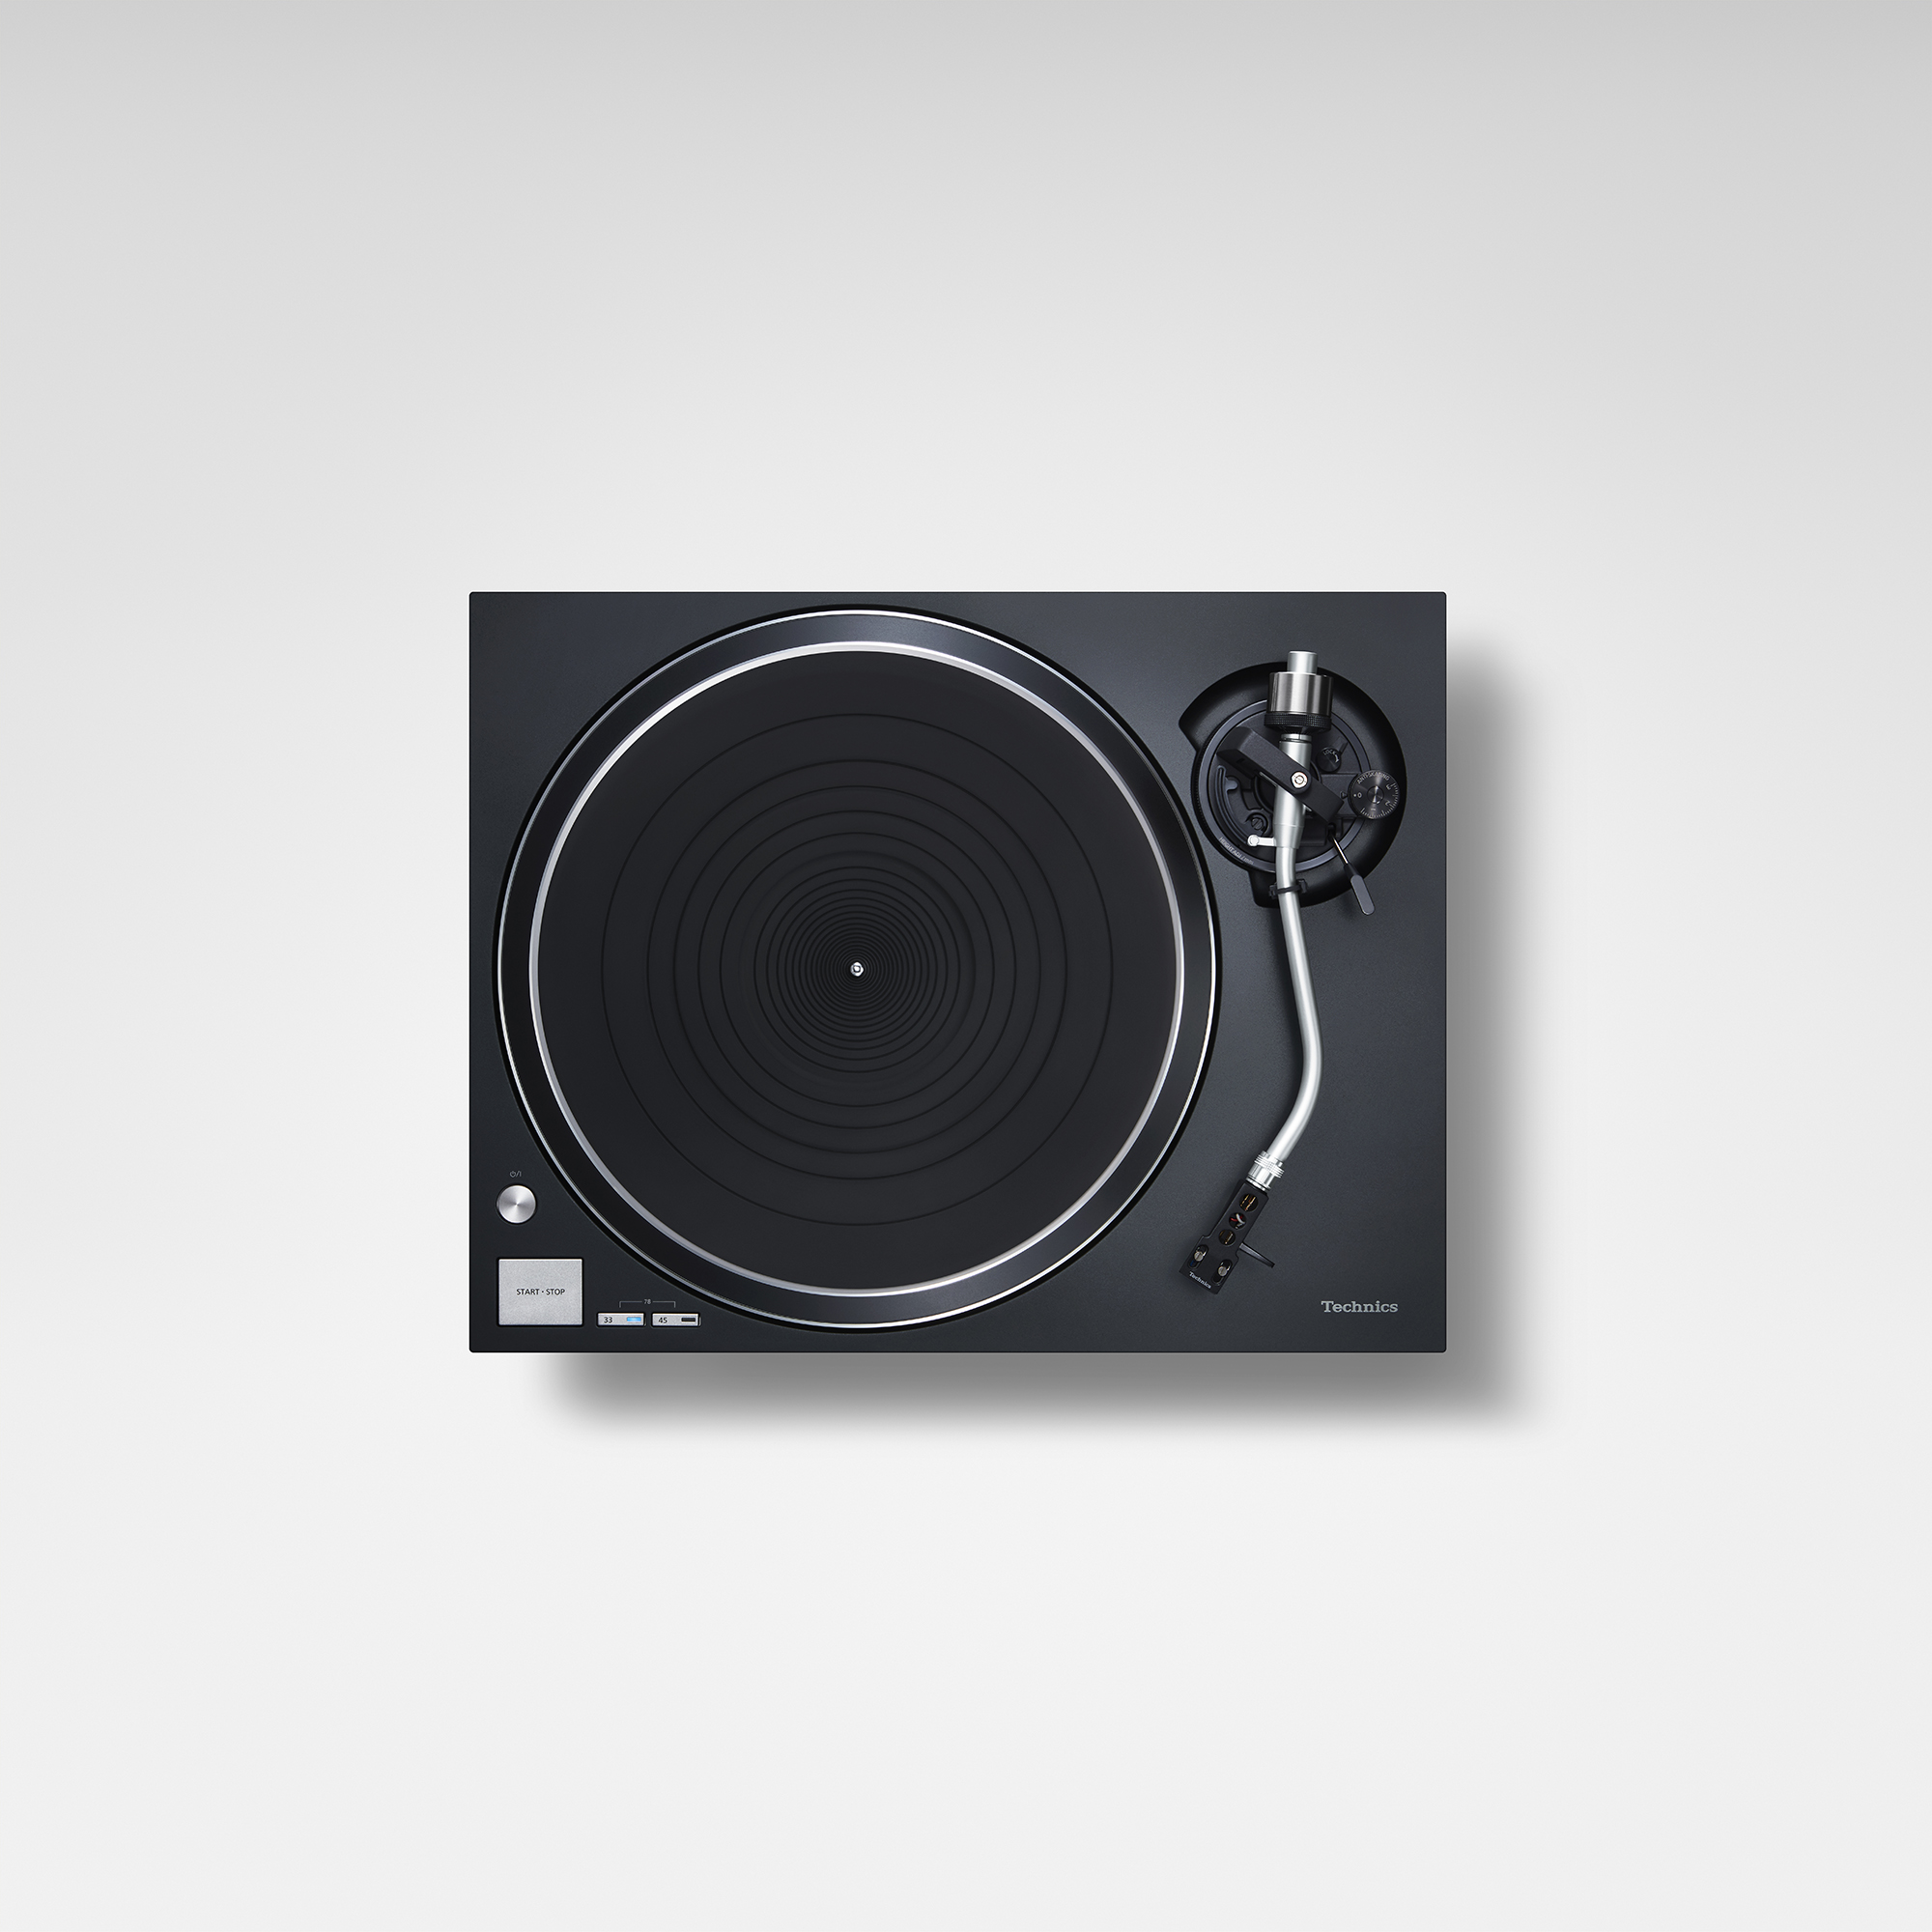 Technics SL-100C top